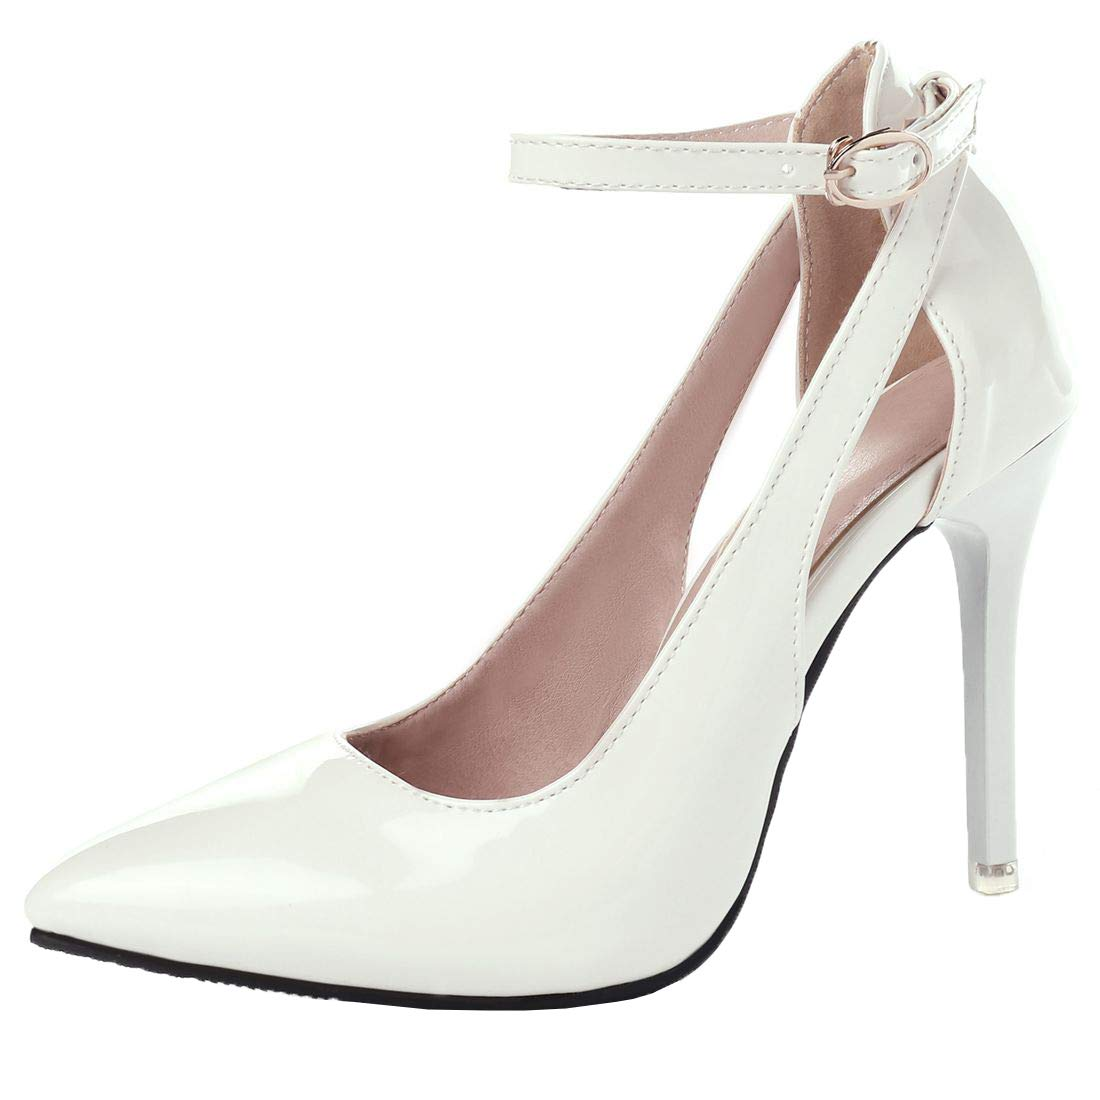 Vitalo Womens Patent Stiletto High Heel Pumps Pointy Toe Ankle Strap Court Shoes